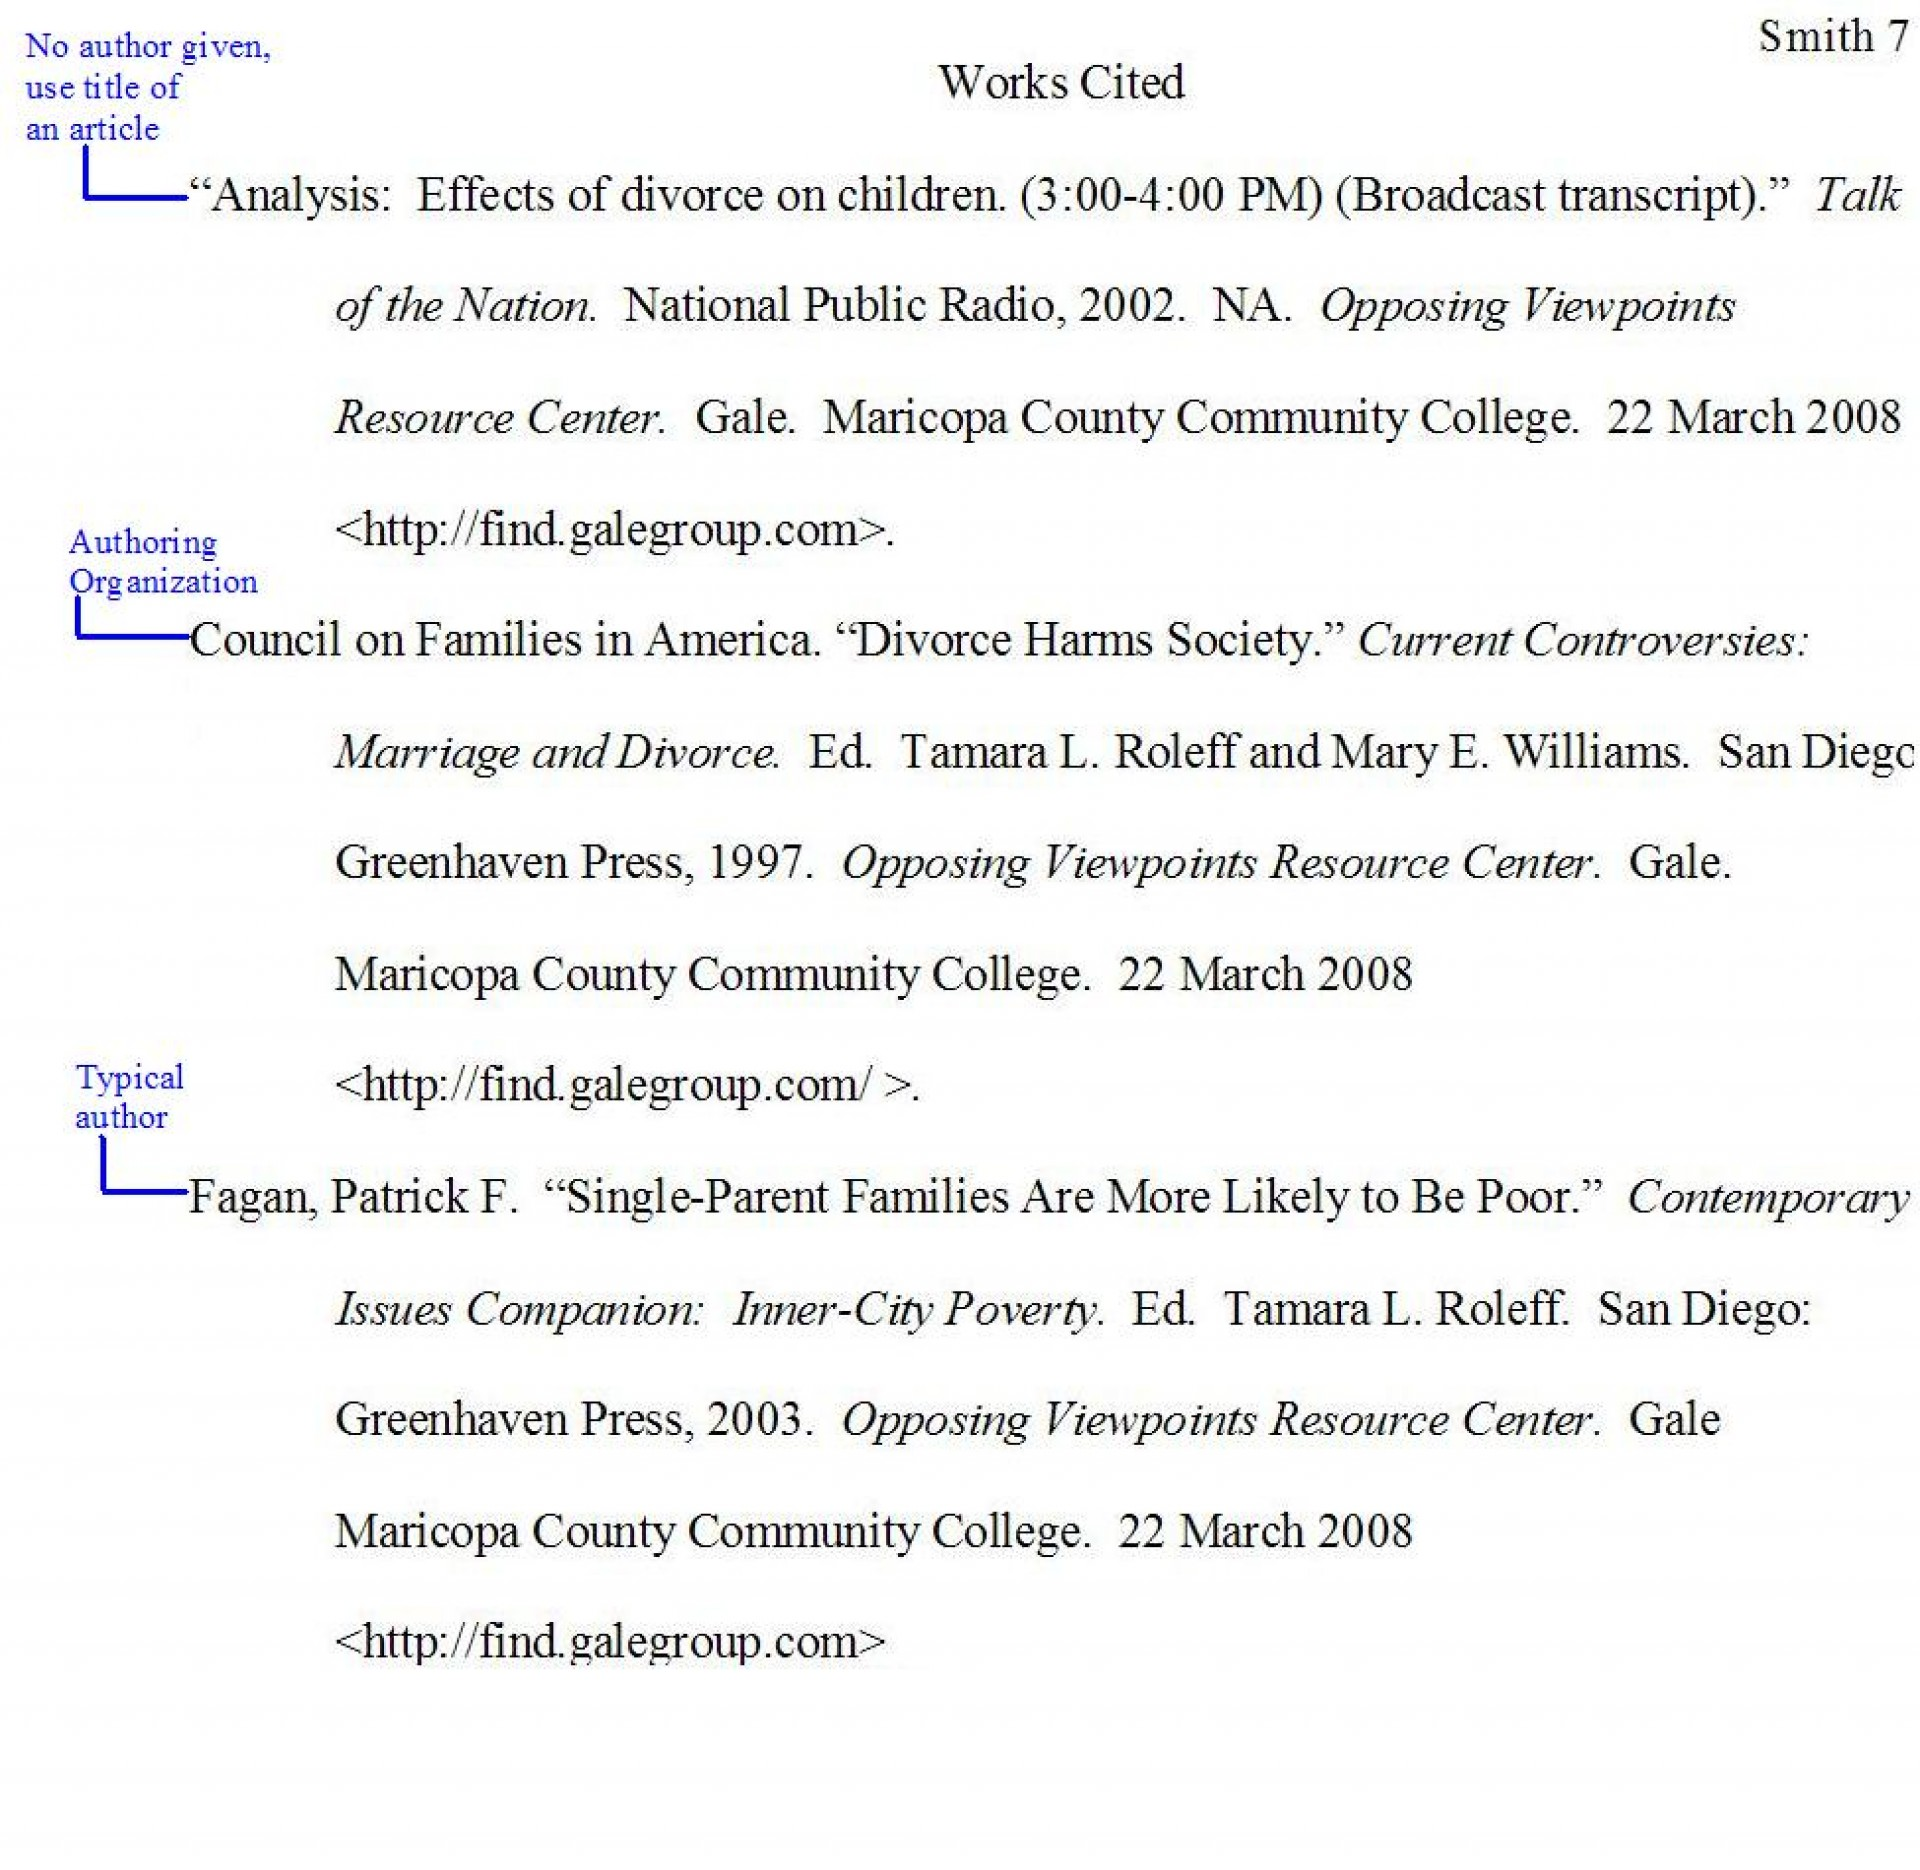 004 Samplewrkctd Jpg Mla Research Paper Citation Imposing Format In Text Citing A 1920